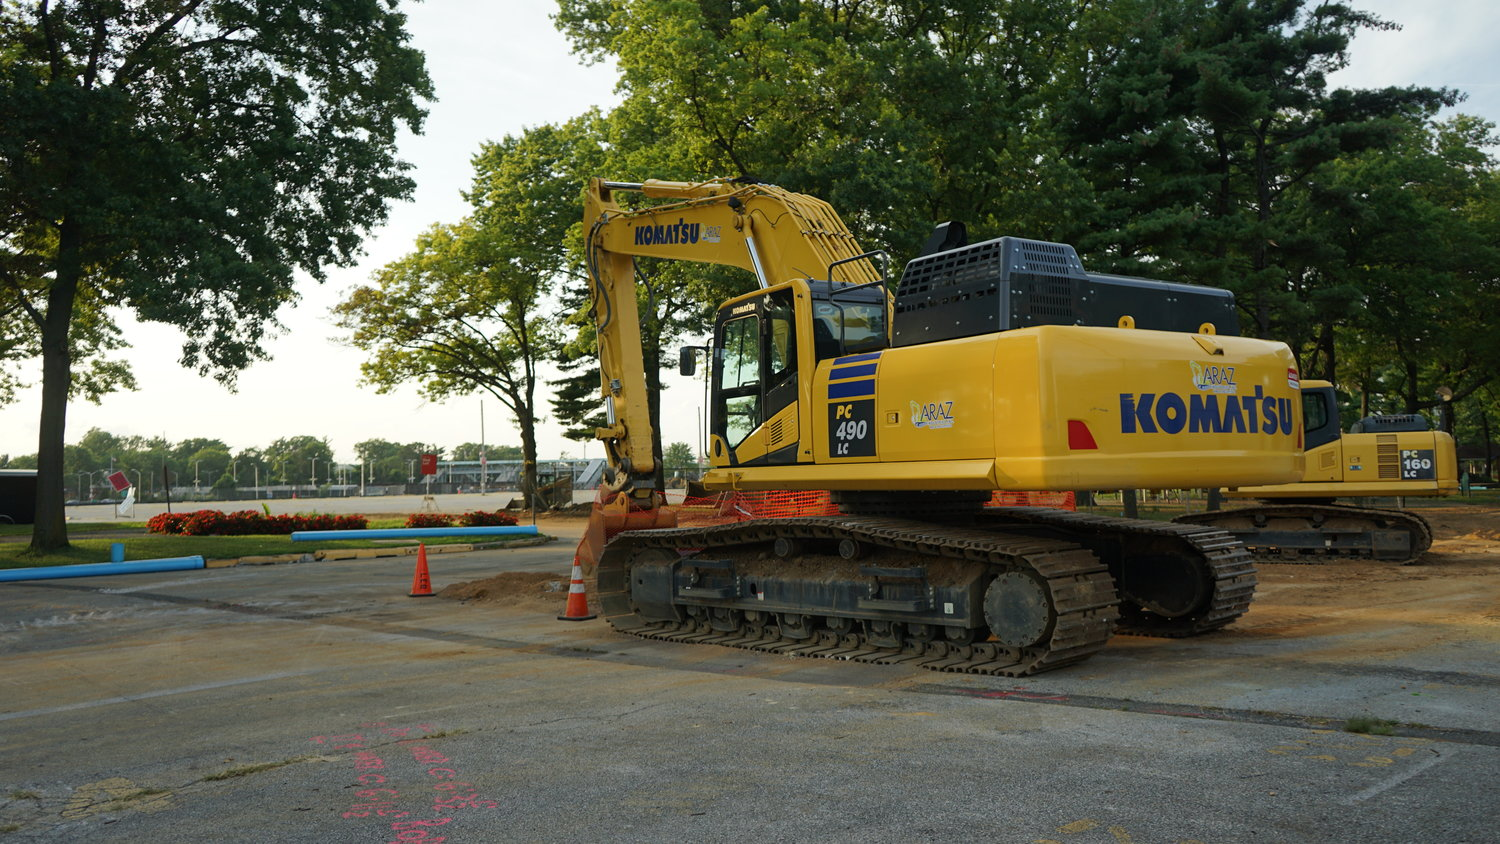 Equipment is already in place at Belmont Park, in preparation for construction, which is expected to begin next month.